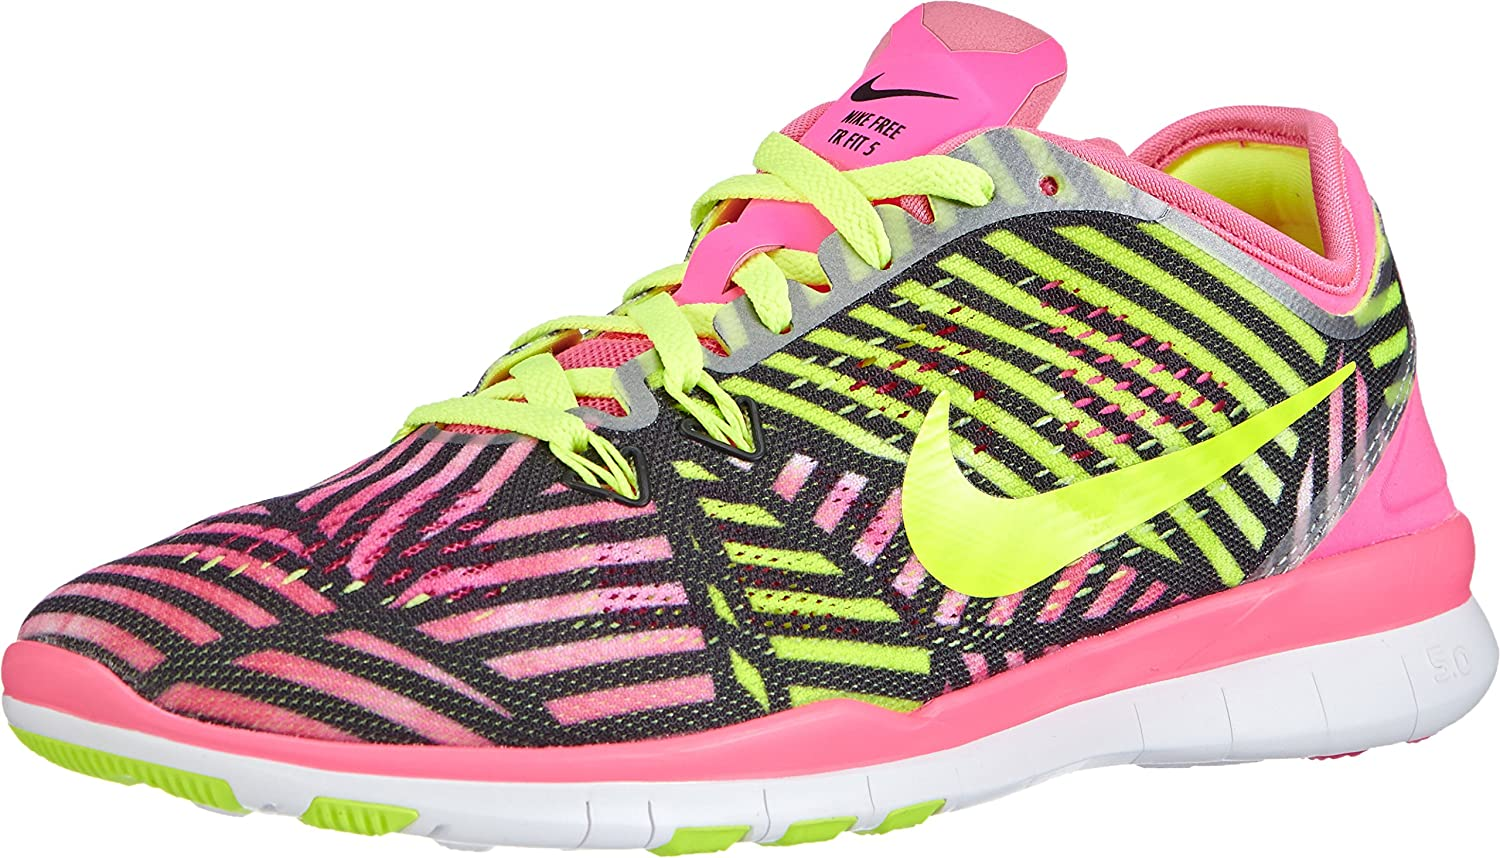 Nike womens free 5.0 TR FIT 5 PRT running trainers 704695 sneakers shoes (uk 4.5 us 7 eu 38, pink power volt black 600)